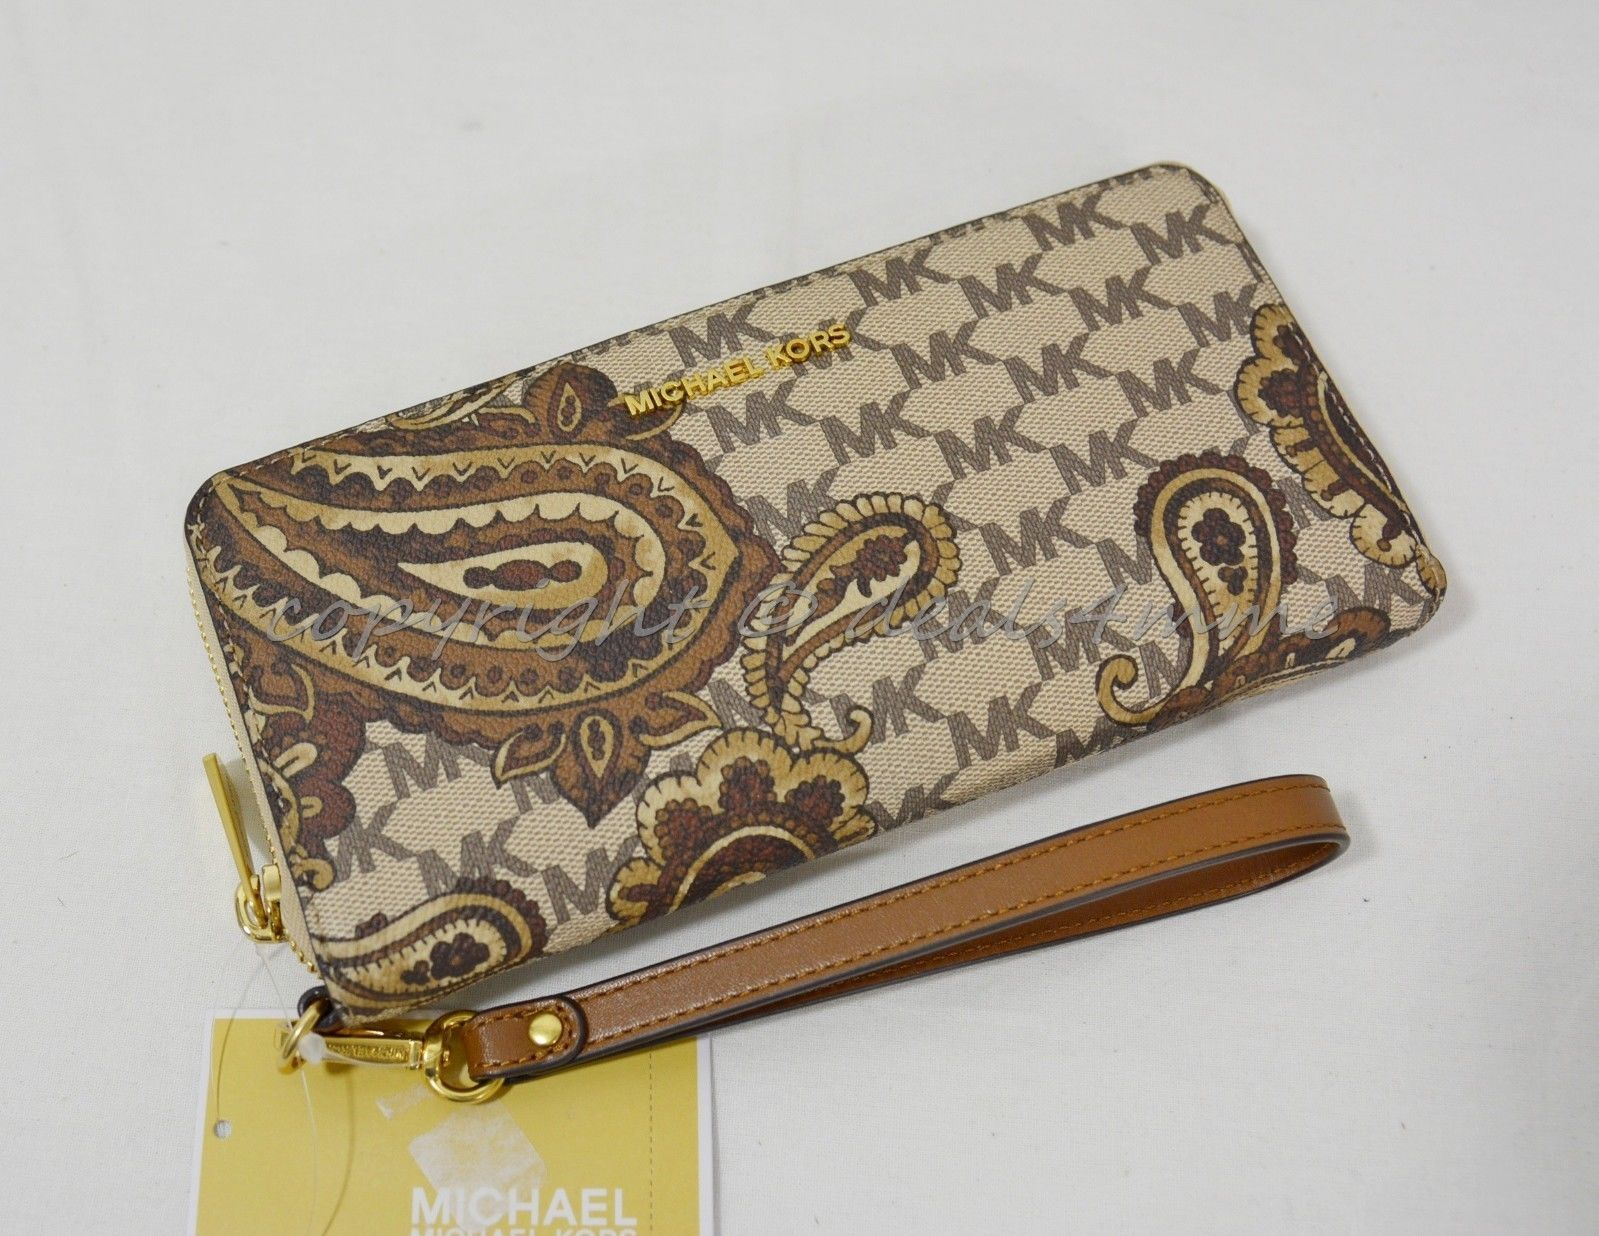 adbcadc40397 S l1600. S l1600. Previous. NWT Michael Kors Paisley Jet Set Travel  Continental Wallet / Wristlet in Luggage